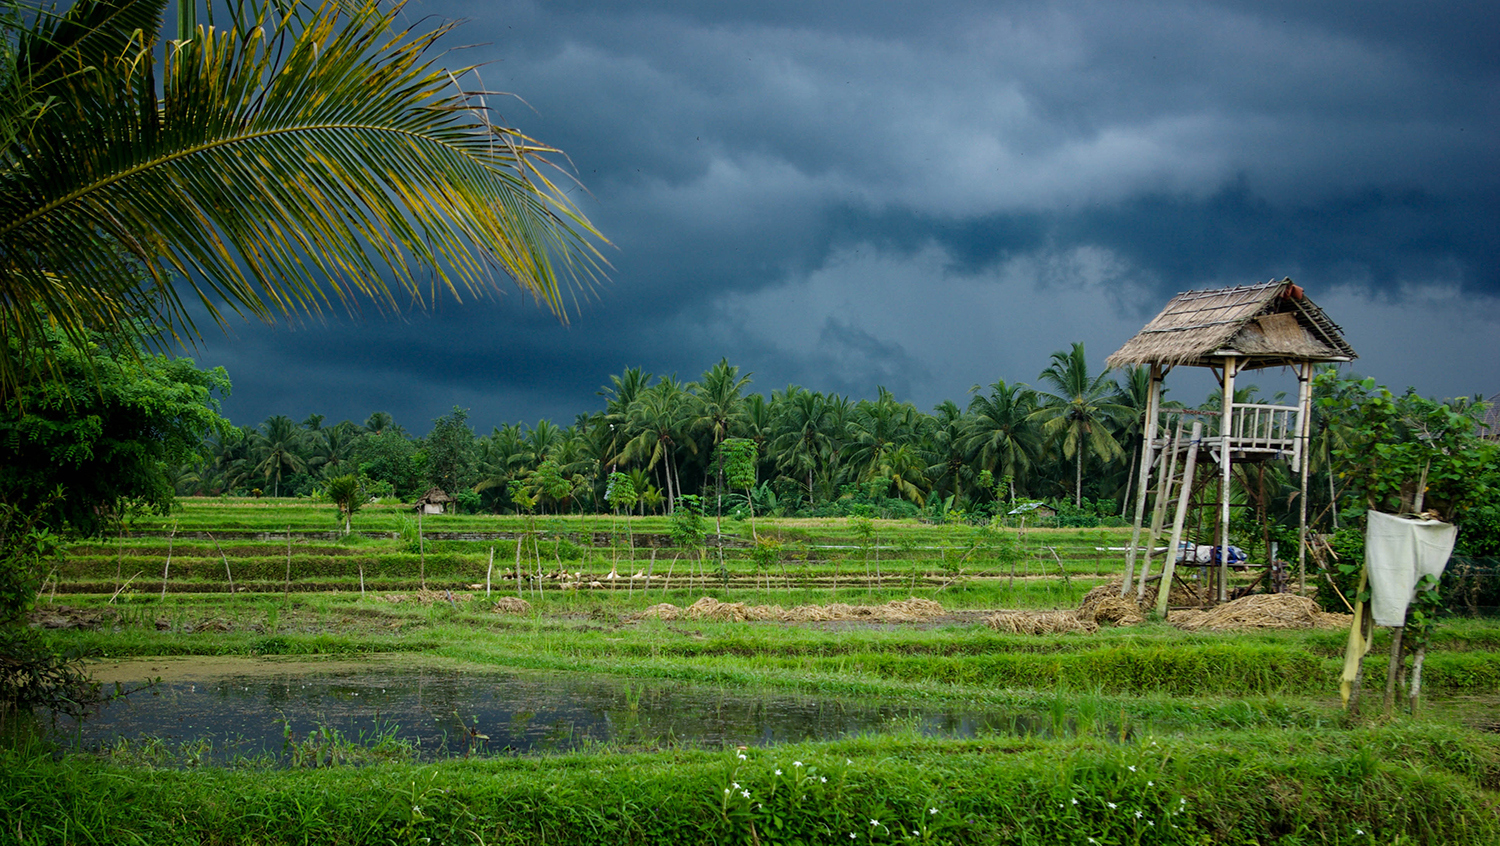 <p>A storm front moves in over rice paddies near Ubud, on Bali. </p>